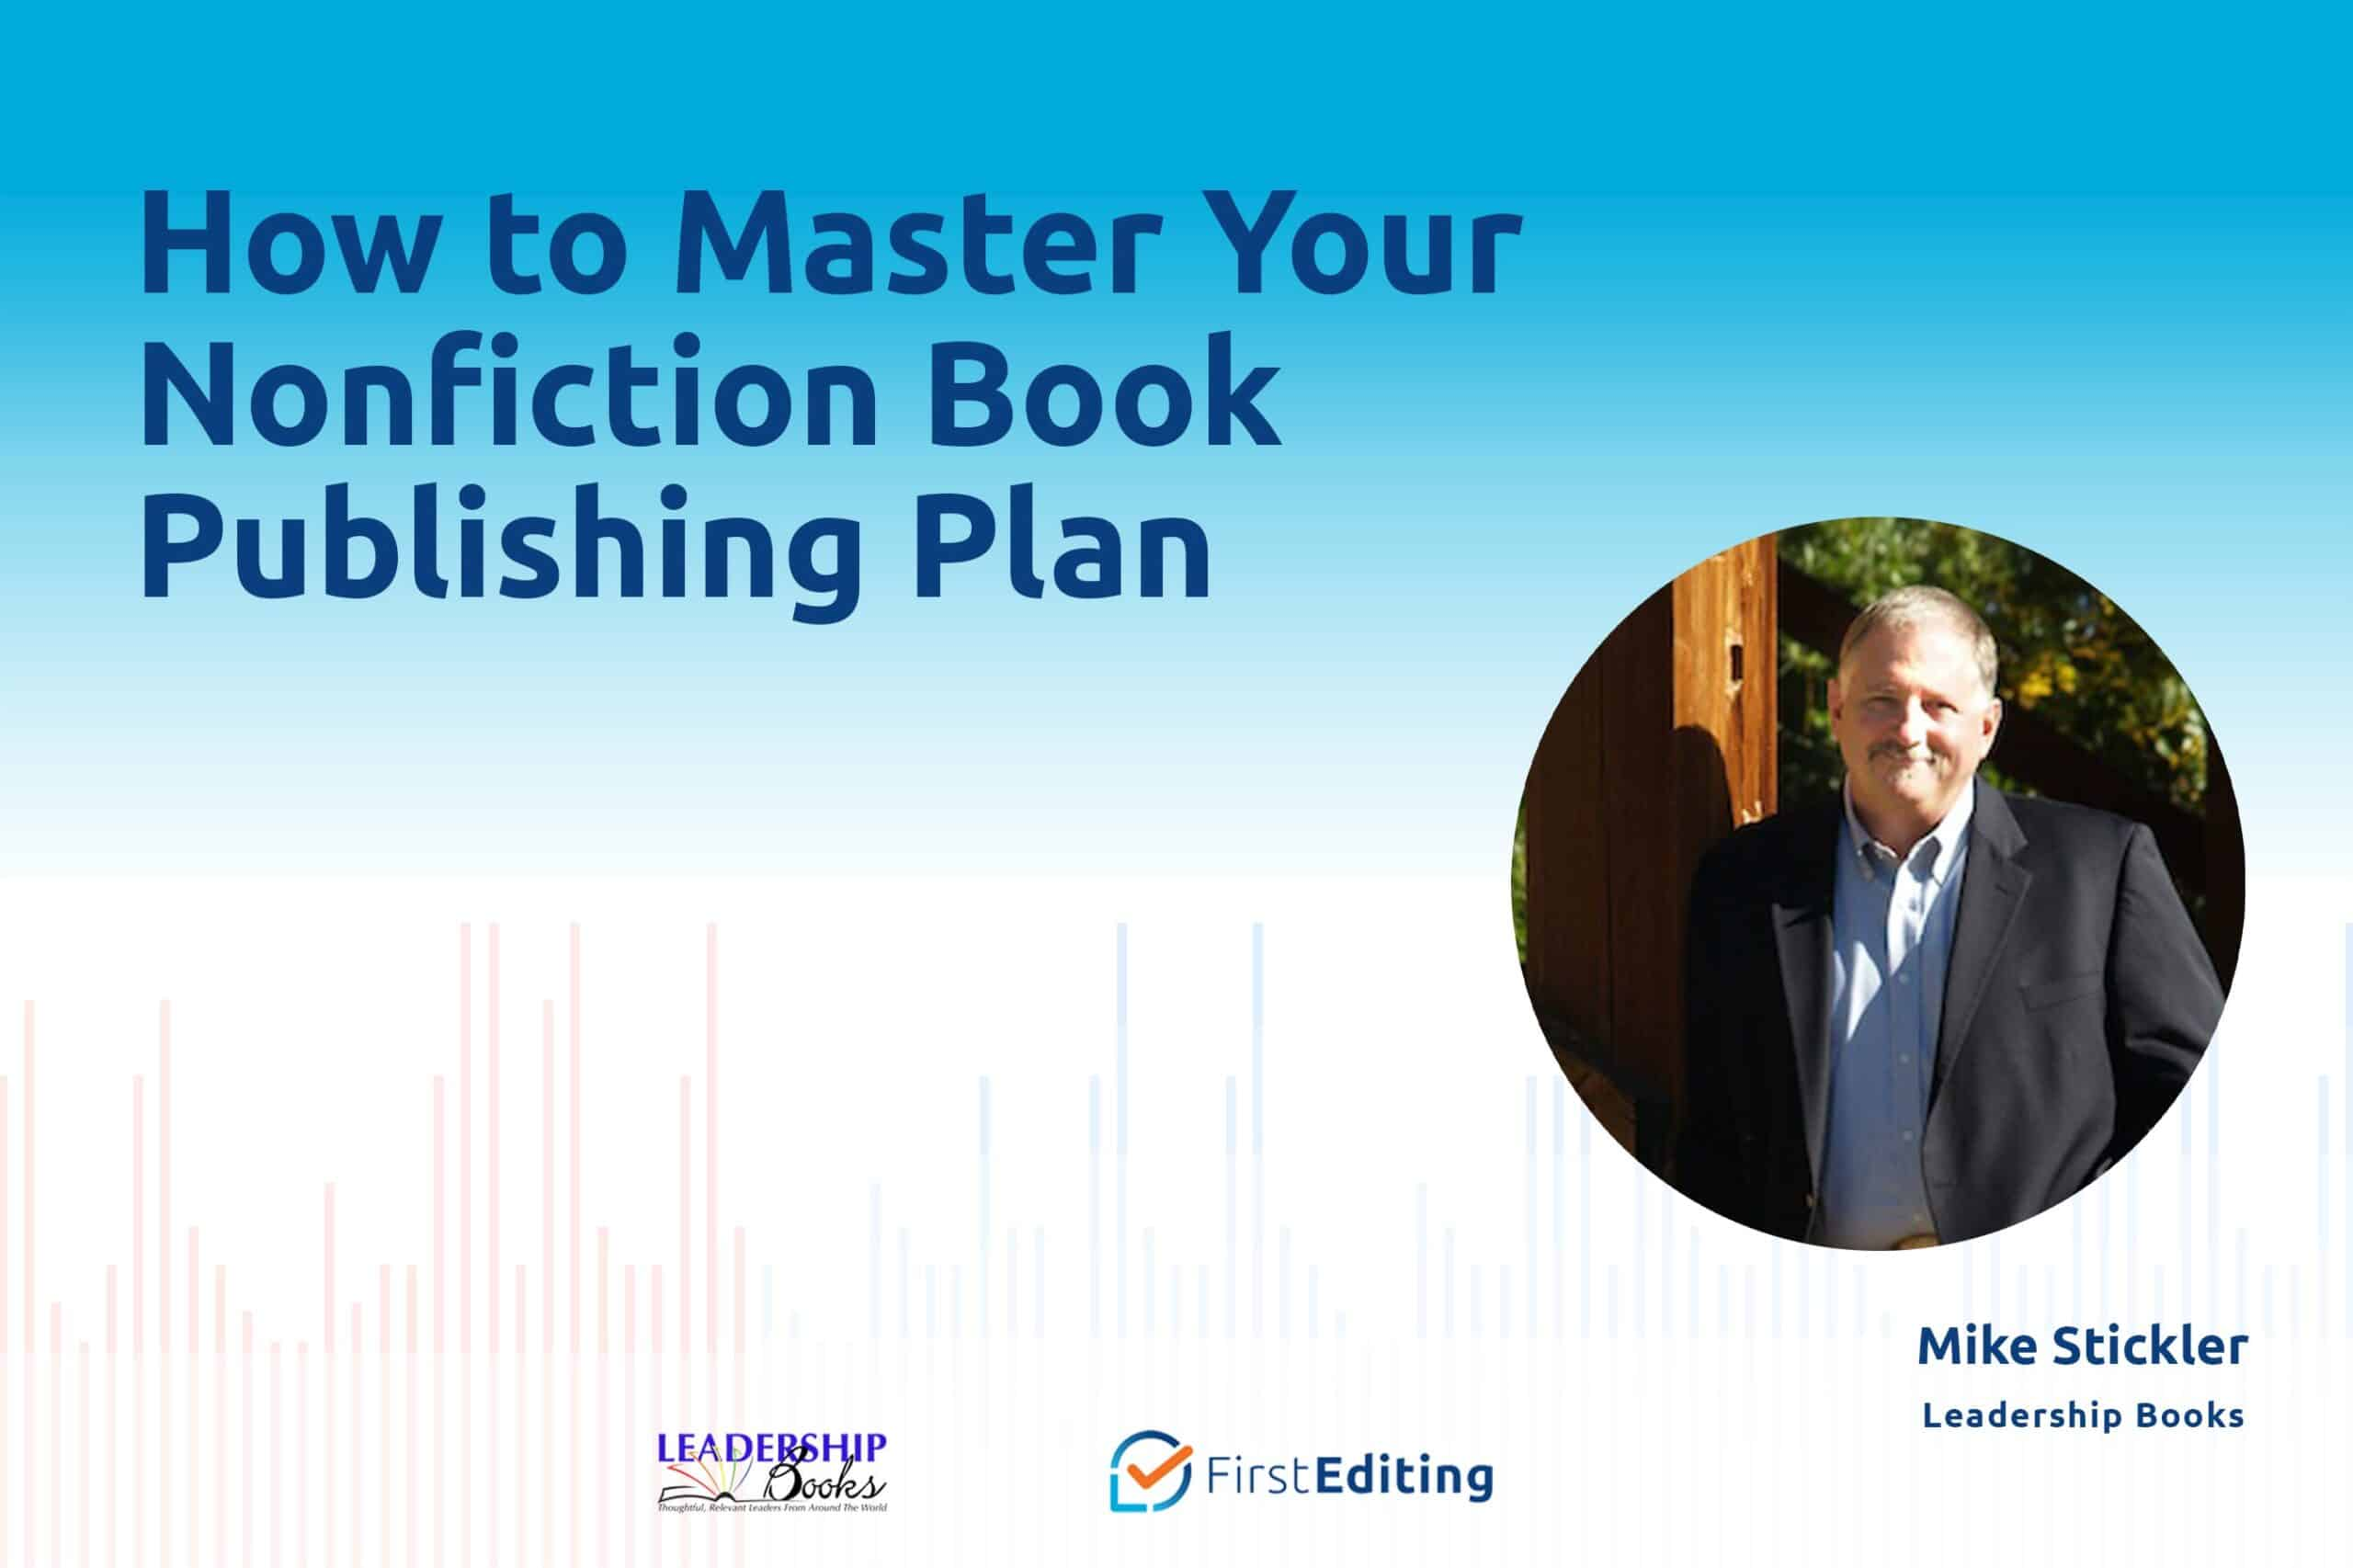 How to Master Your Nonfiction Book Publishing Plan with Michael Stickler